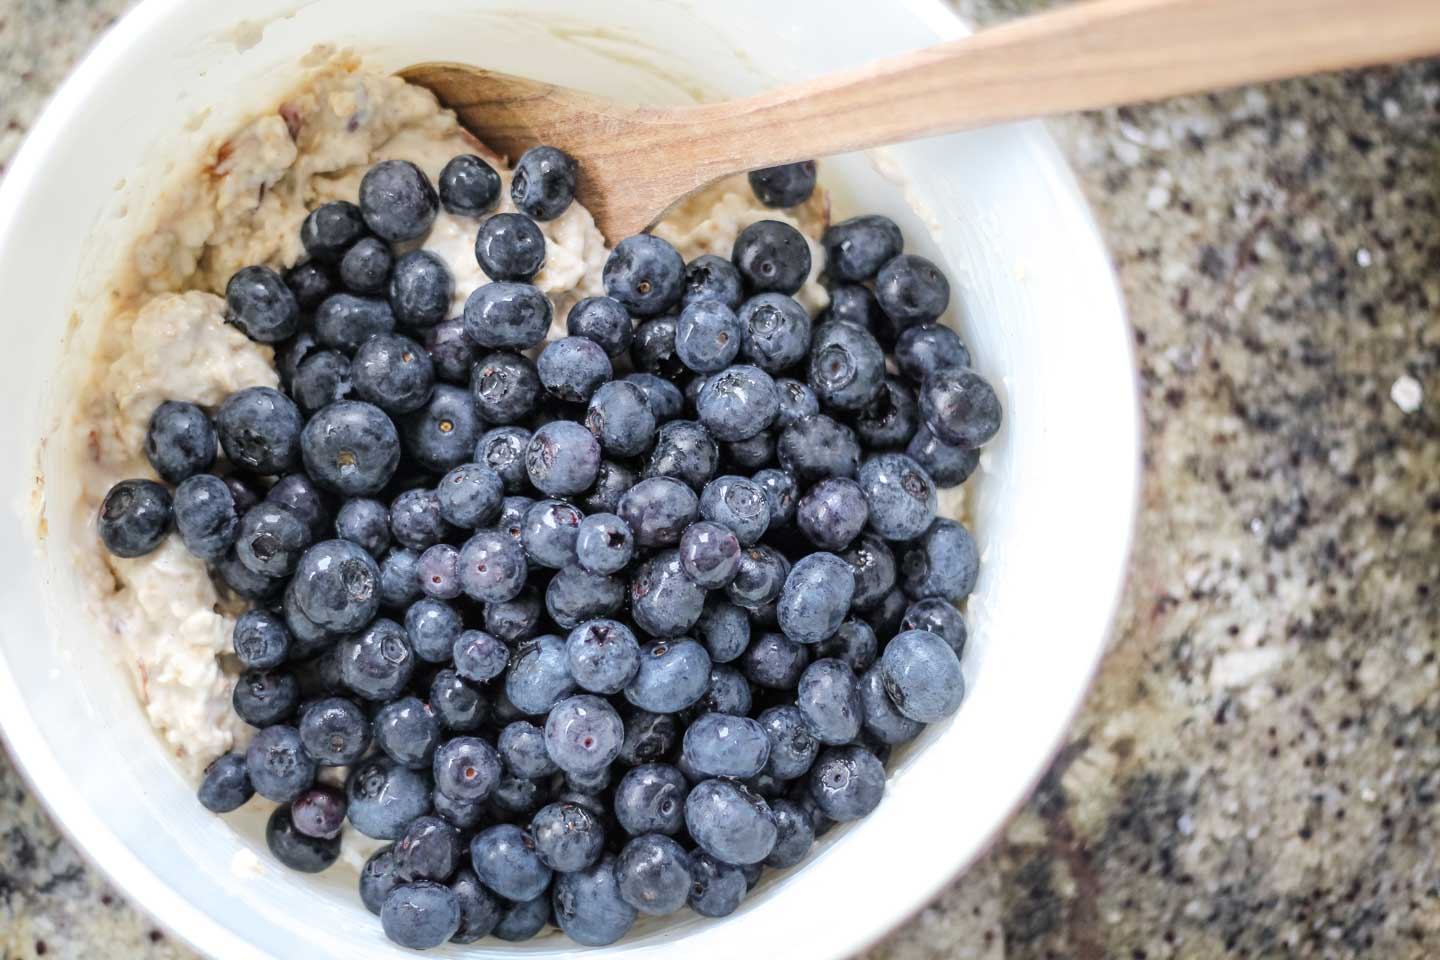 Overhead of a white bowl filled with the overnight oats ingredients (a huge pile of blueberries on the top), being mixed gently with a wooden spoon.